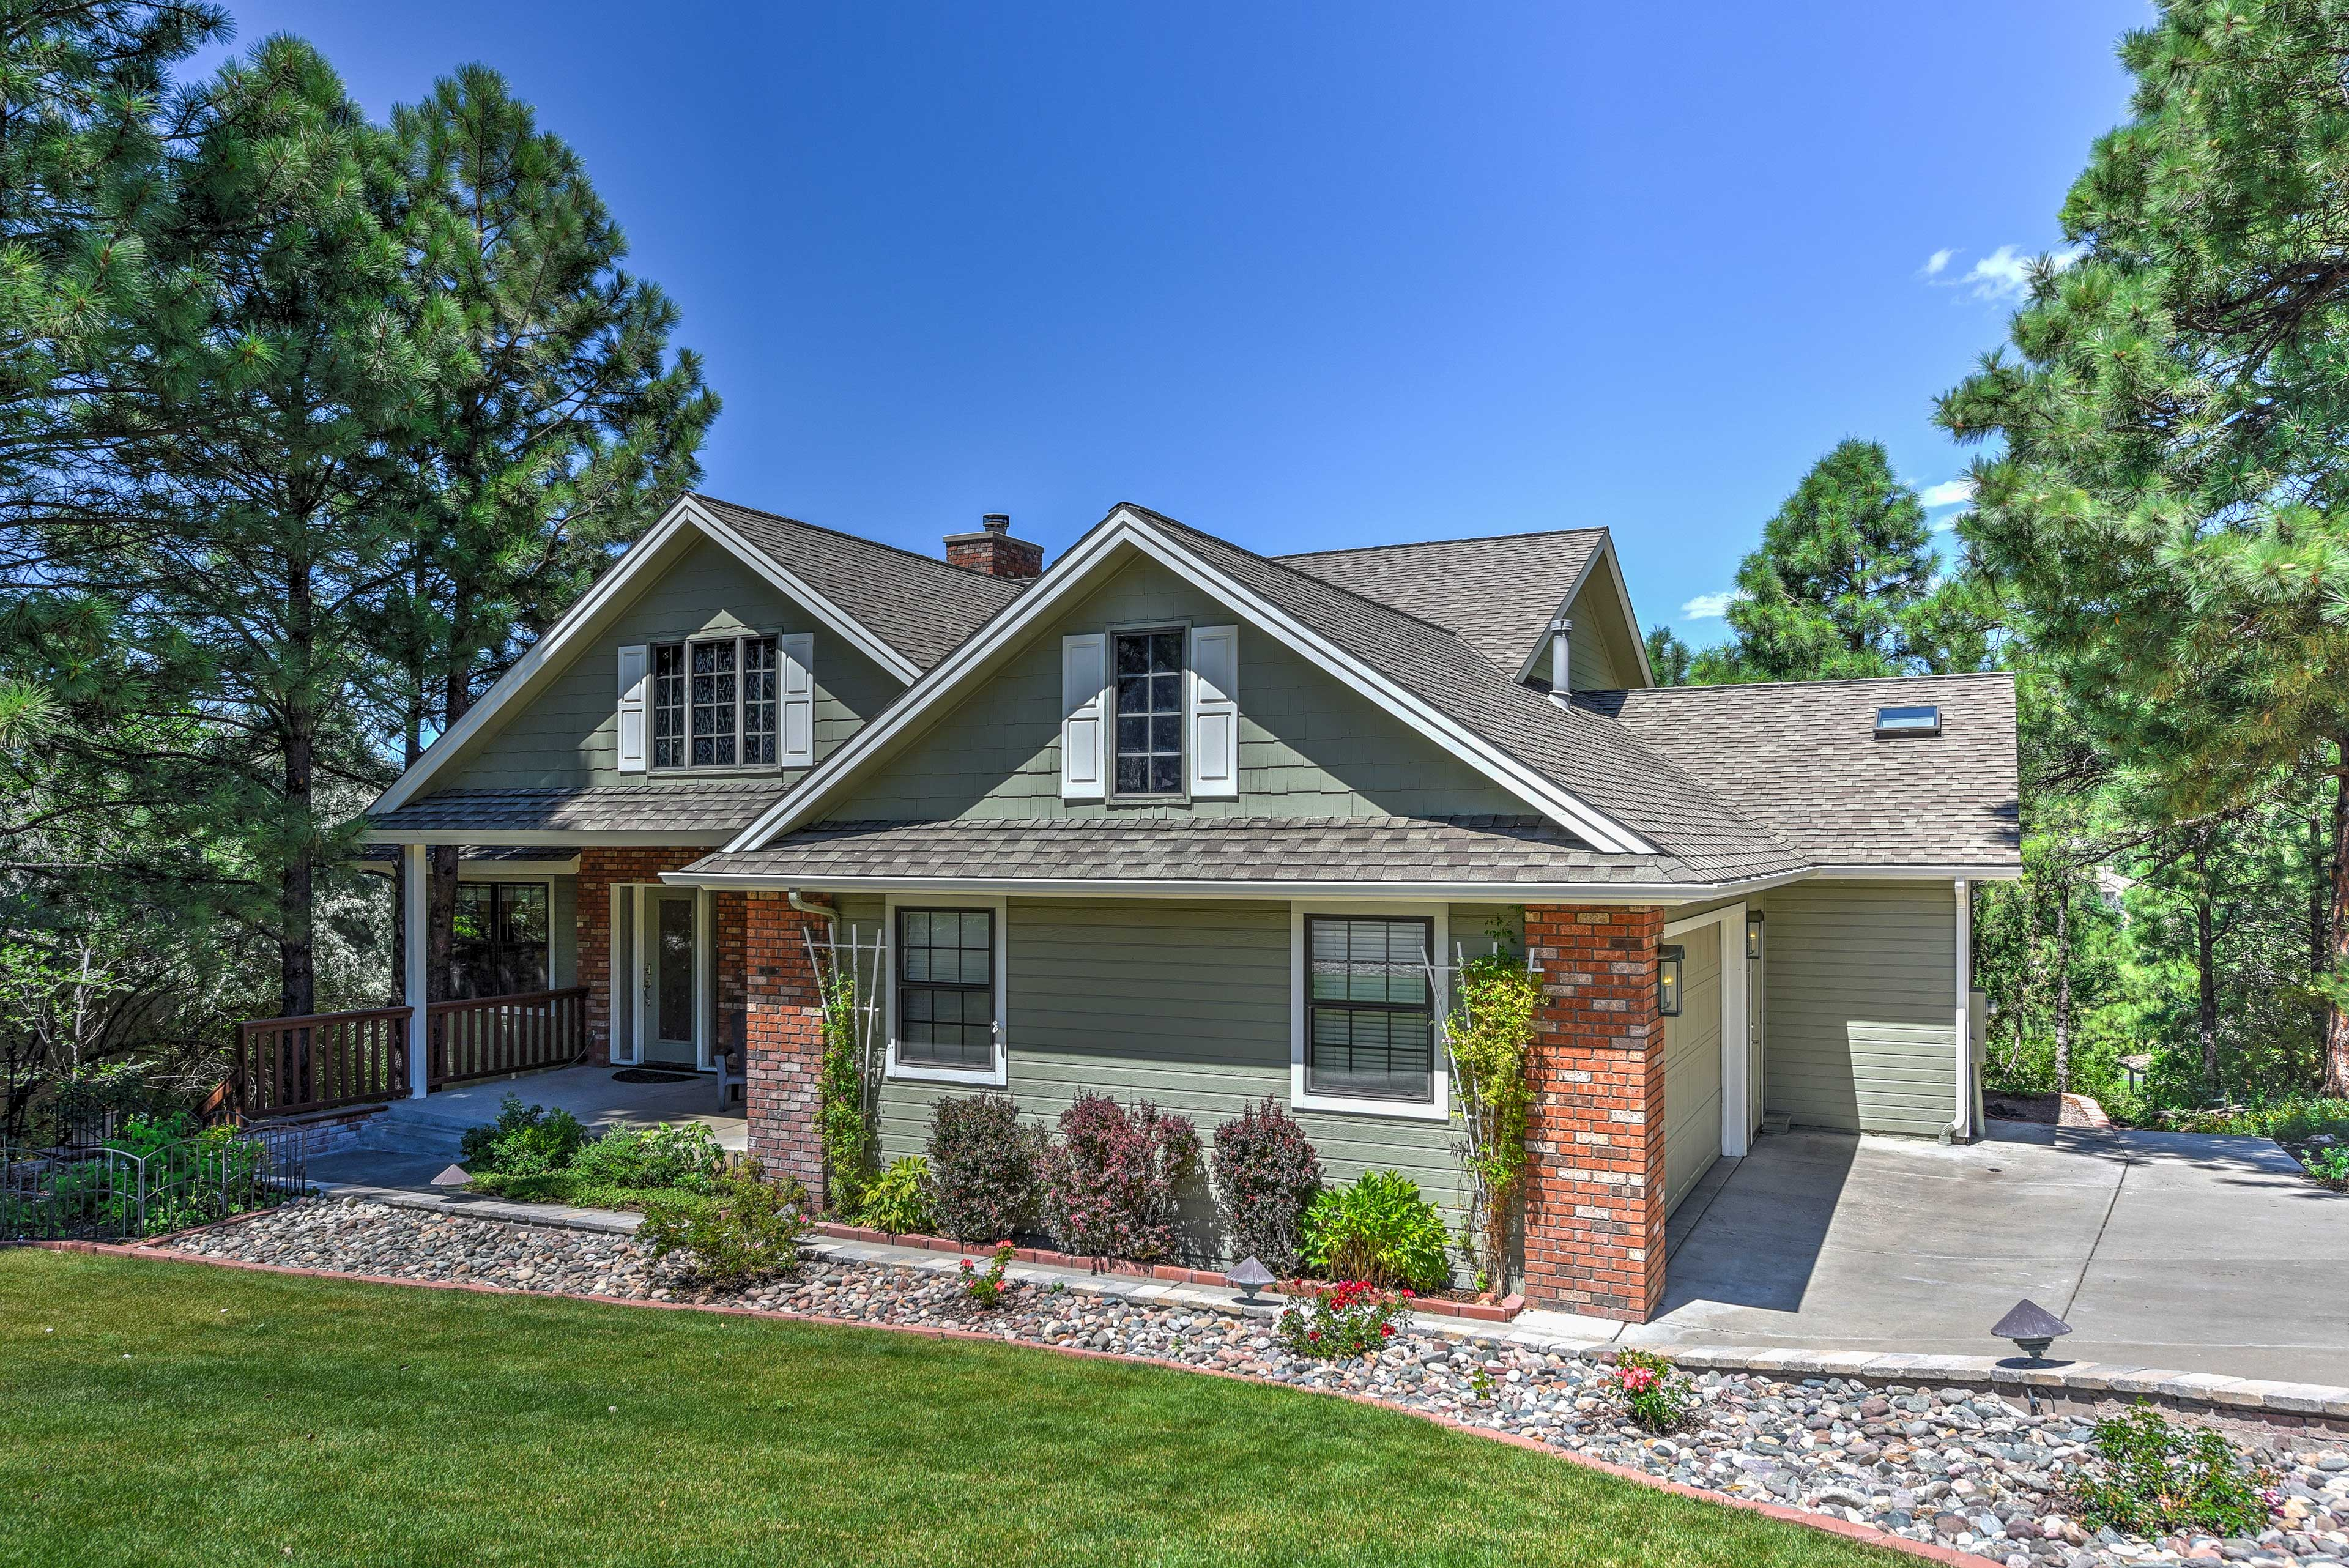 With million dollar views and a prime location, this Flagstaff home has it all!